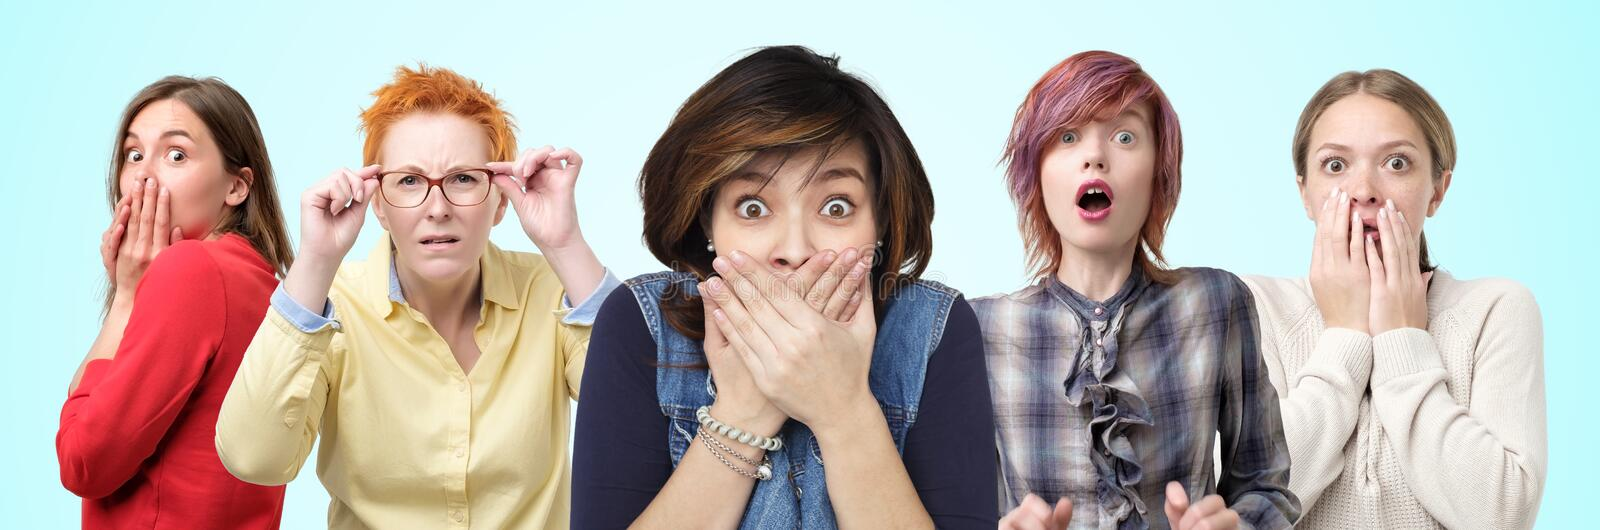 Horizontal portrait of several female closes hands over mouth in shock by what they heard. royalty free stock image